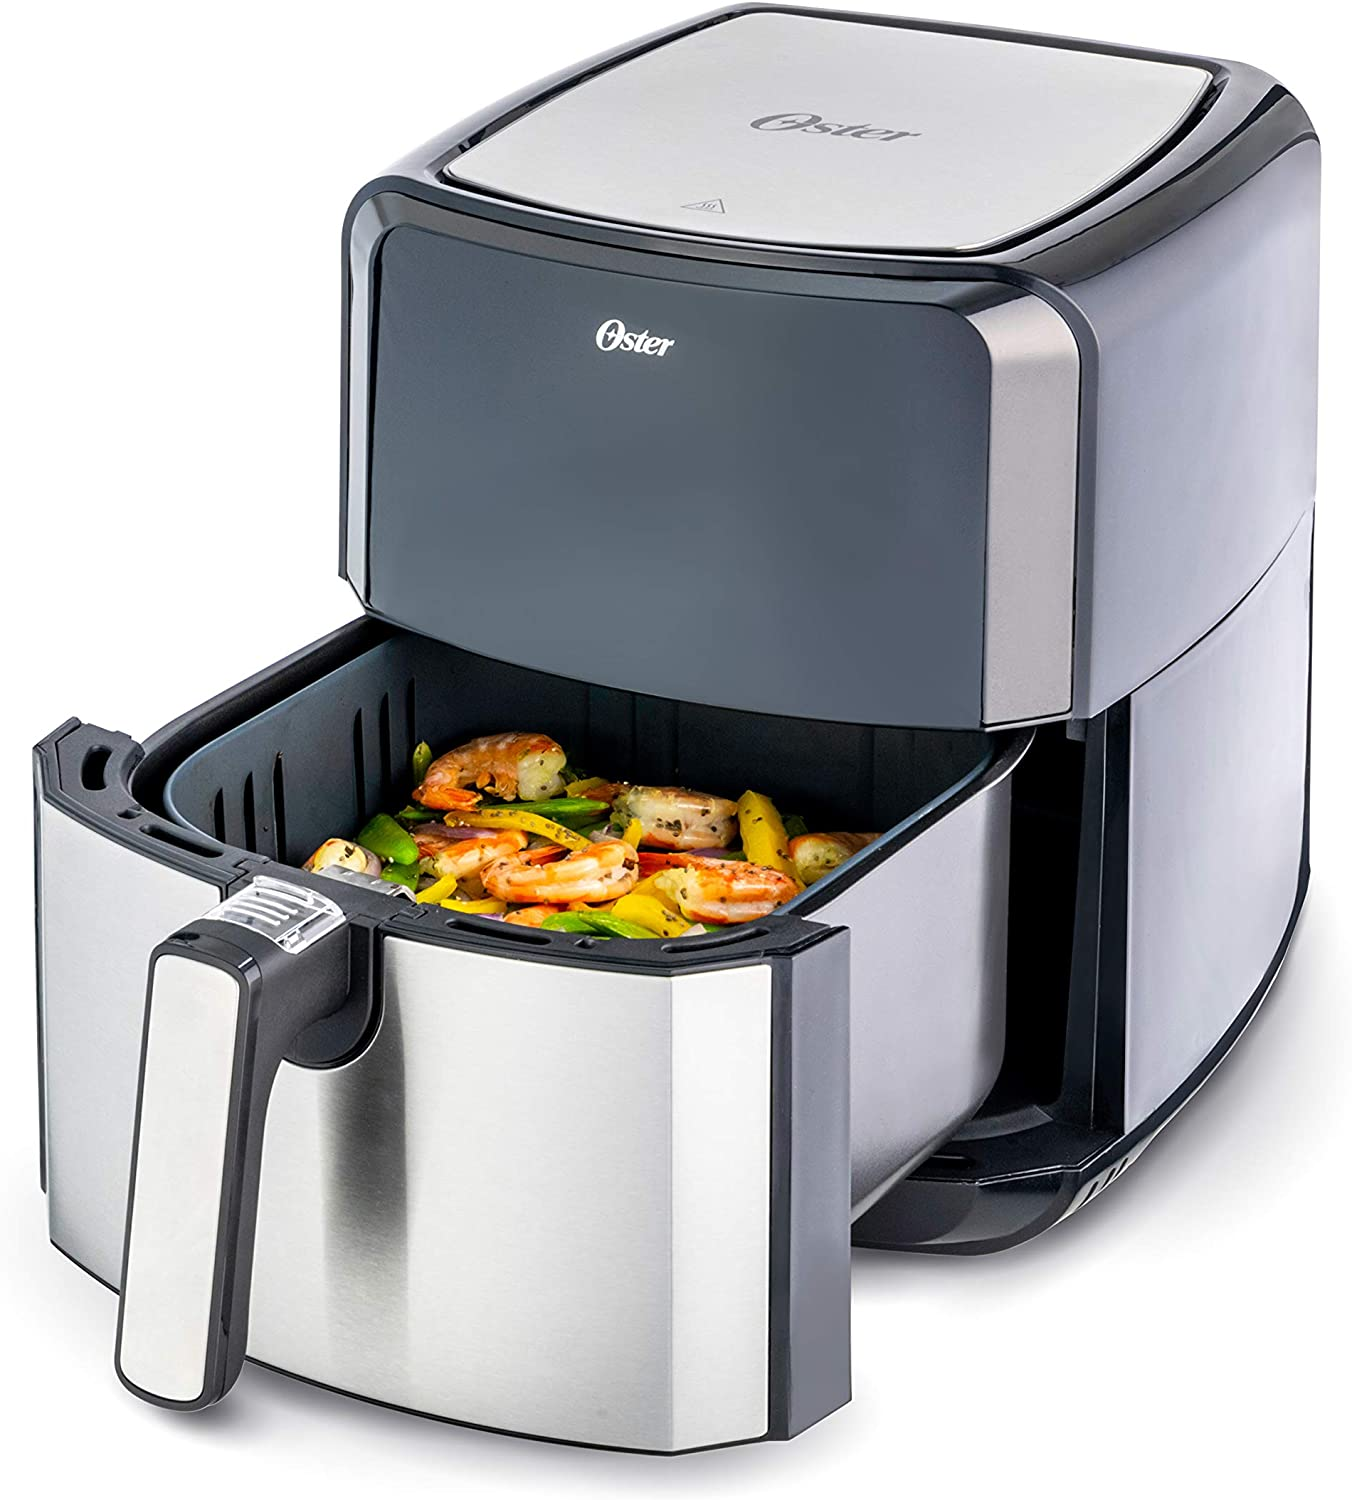 Oster DiamondForce Nonstick XL 5 Quart Digital Air Fryer, 8 Functions with Digital Touchscreen